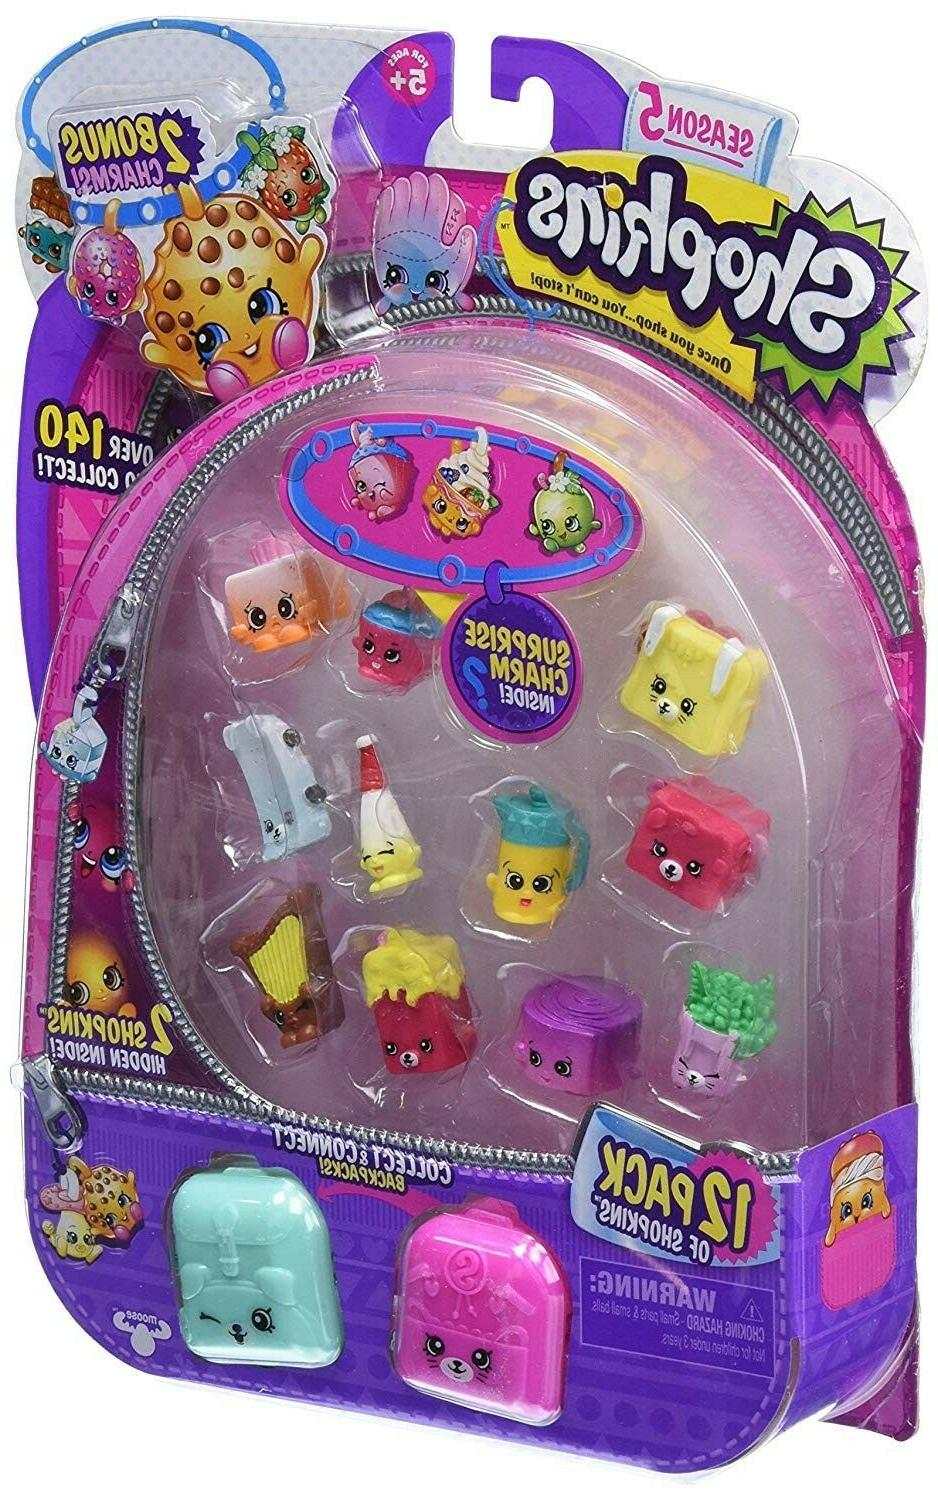 NEW Shopkins Season 5 Bundle: 12 pack and 5 pack